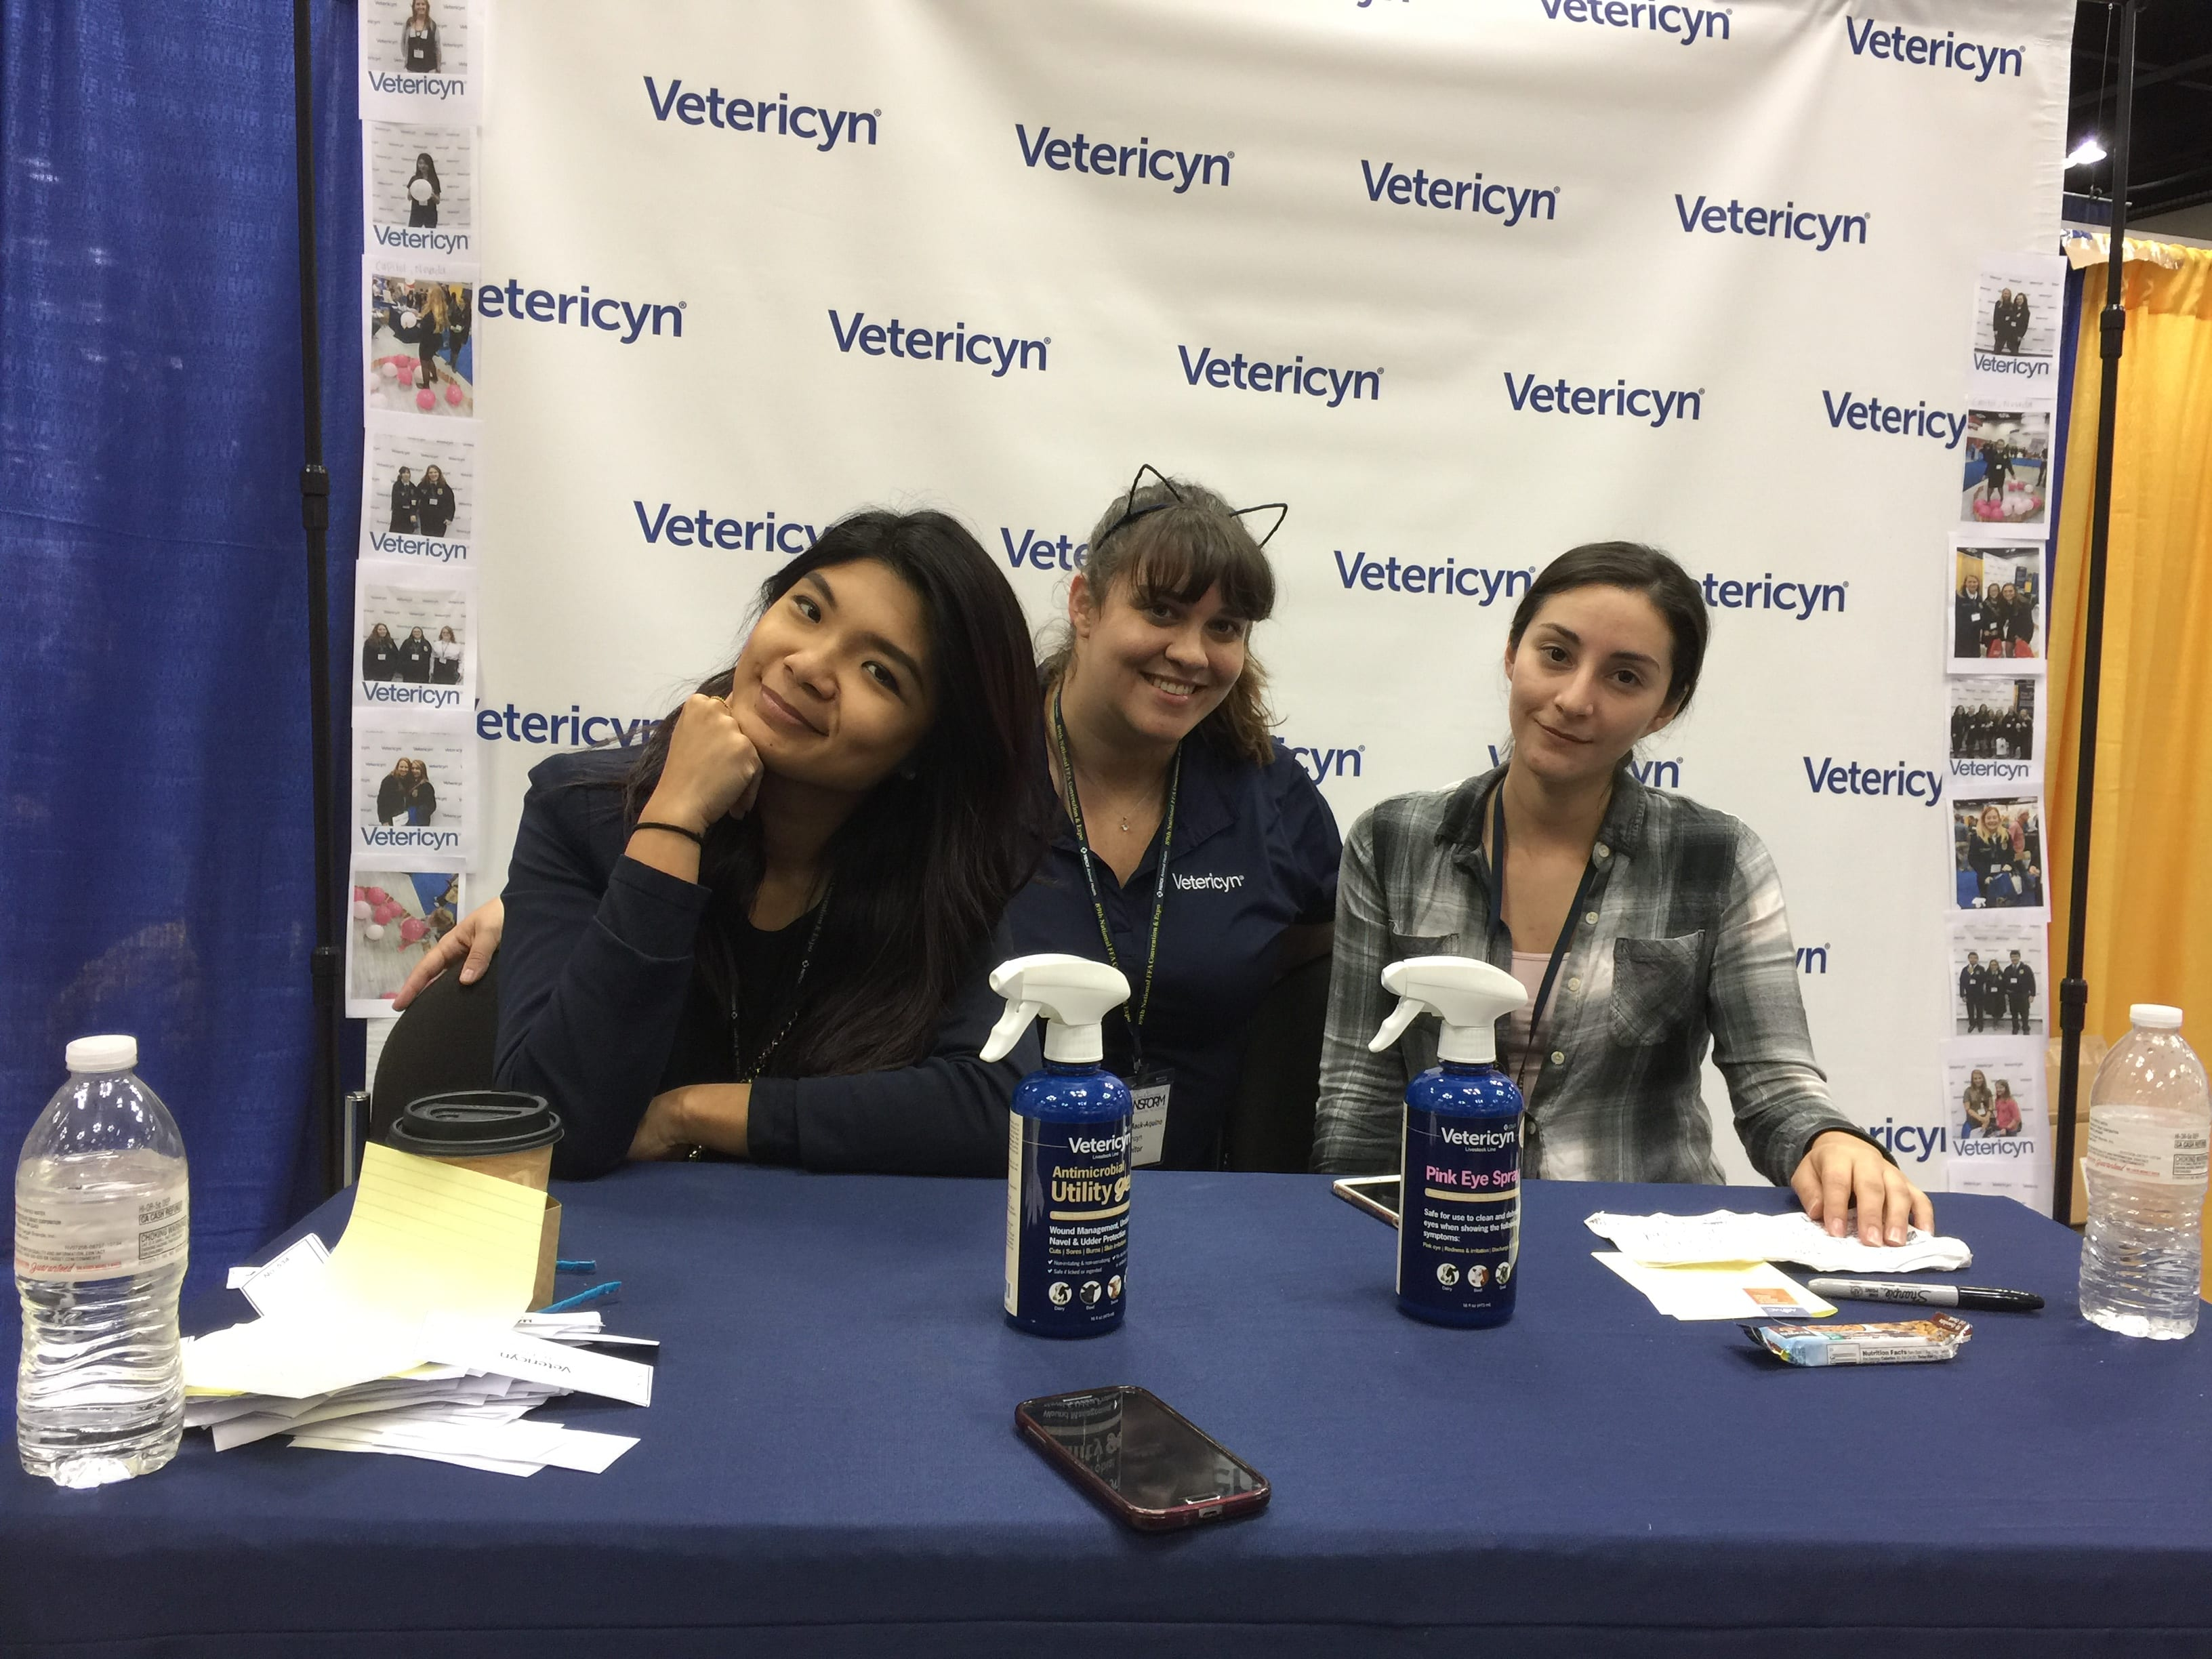 Vetericyn team sharing advisor kits, scholarship info, the new FoamCare pet and equine shampoo.